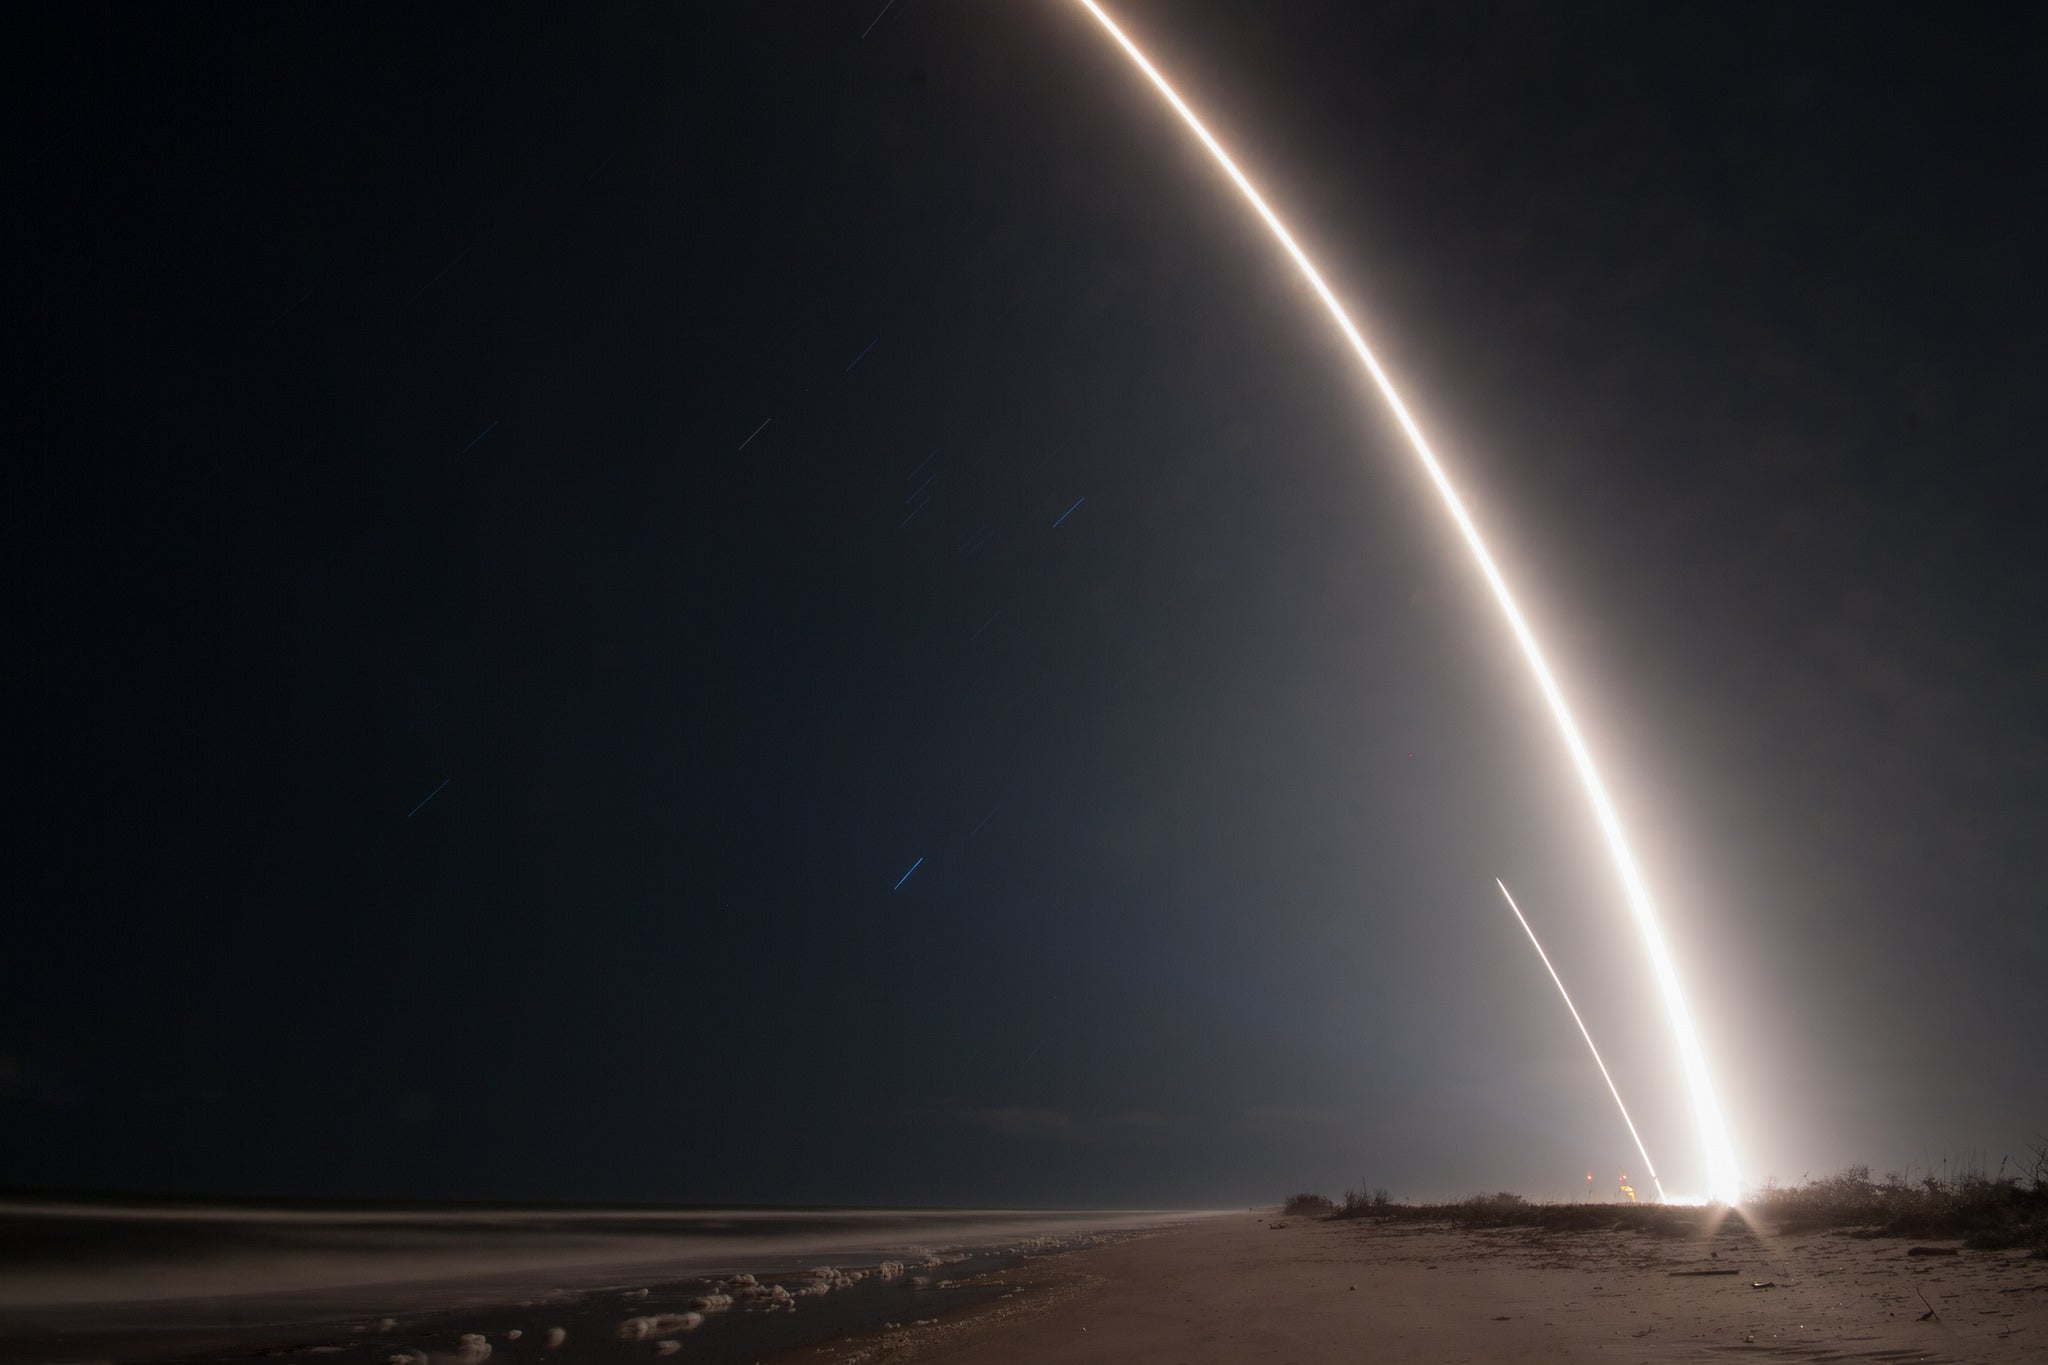 Meet the amateur astronomers who track secretive spy satellites for fun